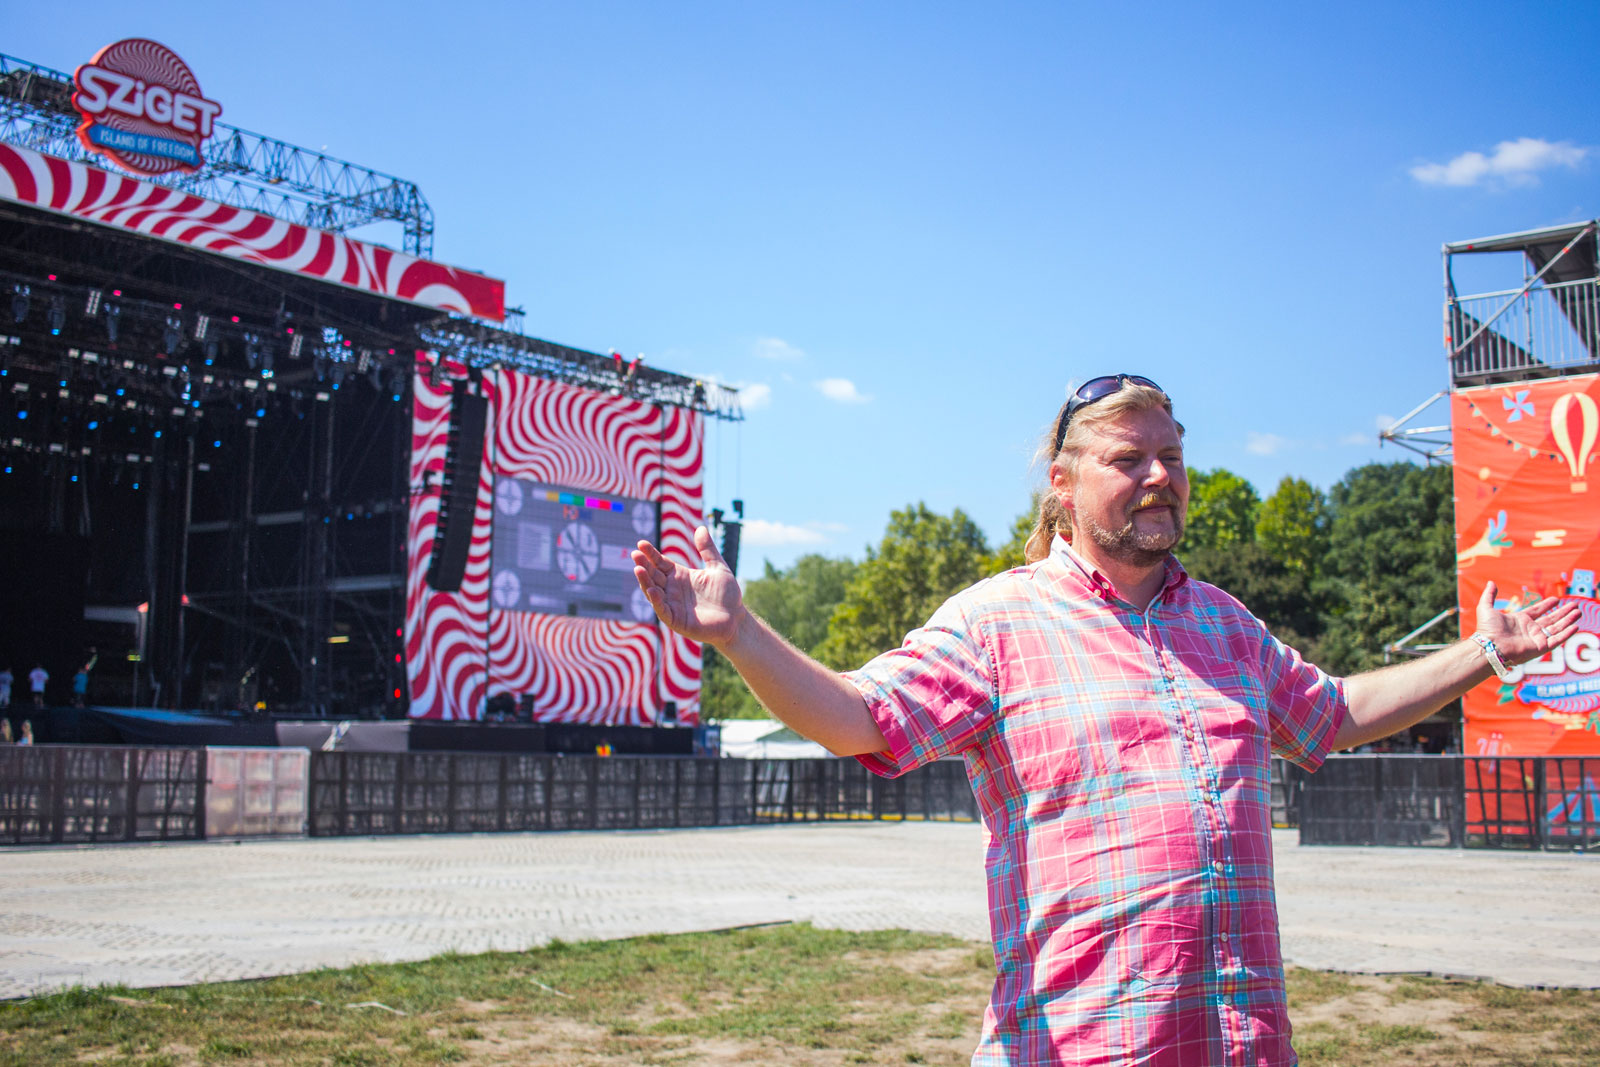 Karoly Gerendai The Founder Of Sziget Festival